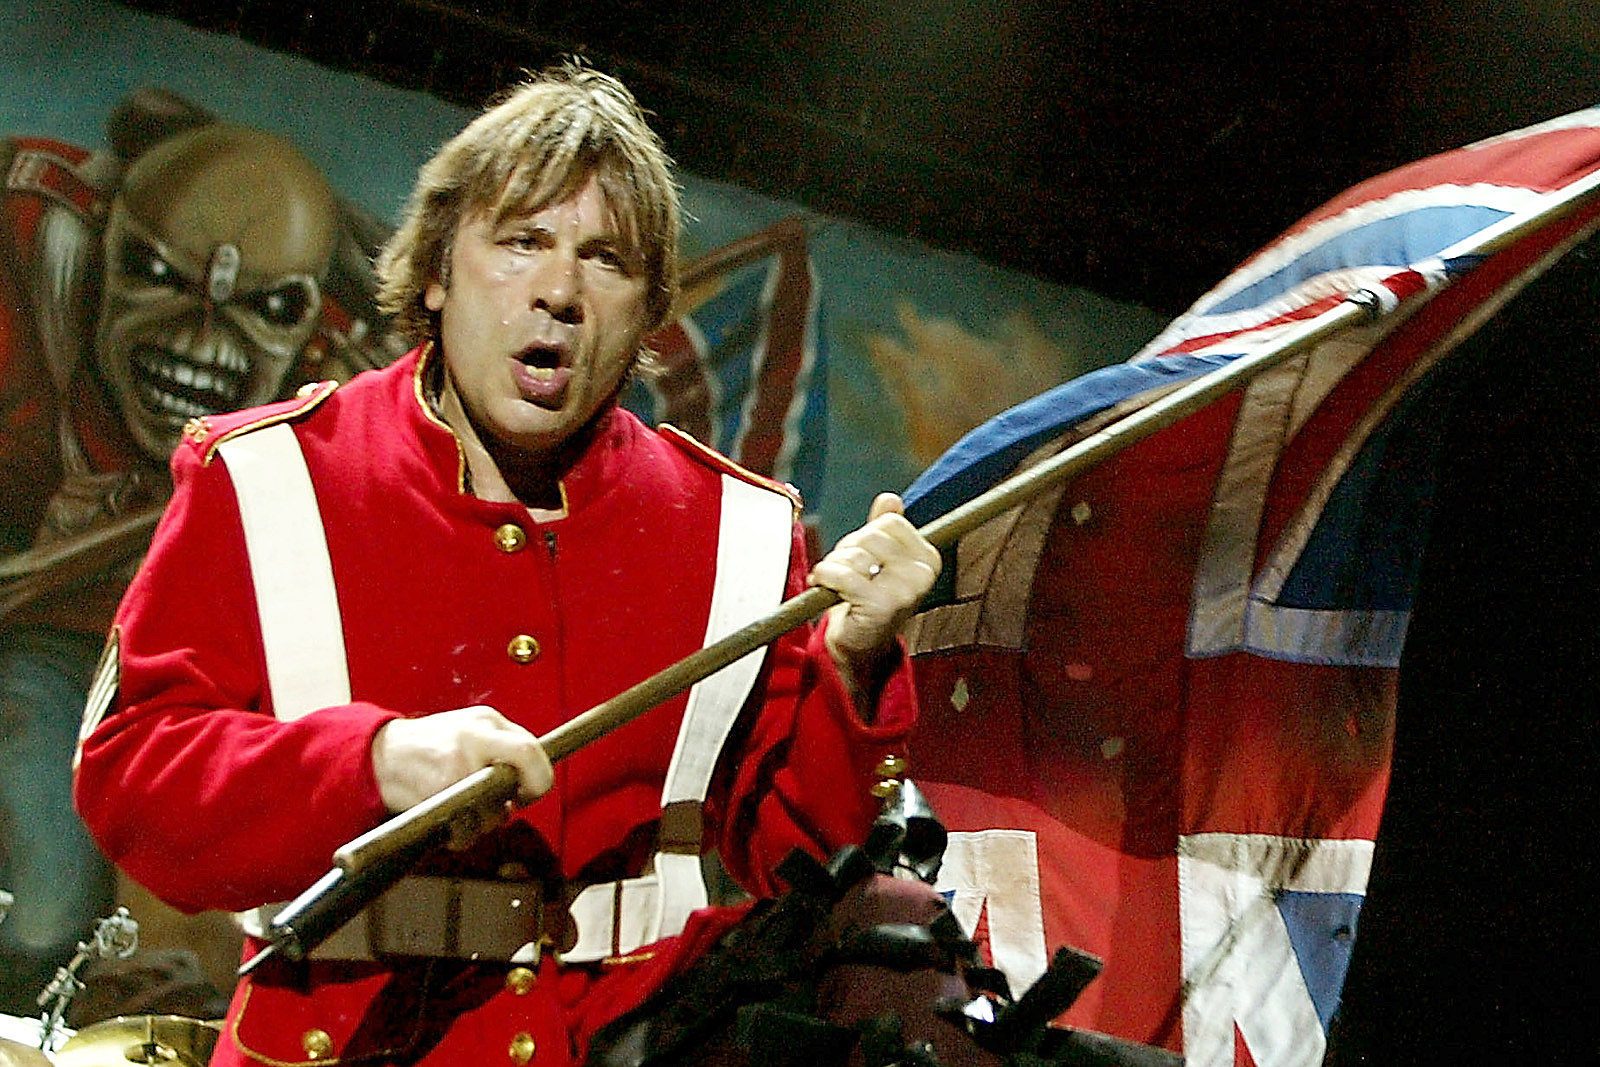 bruce dickinson aims to reclaim iron maiden song for solo album